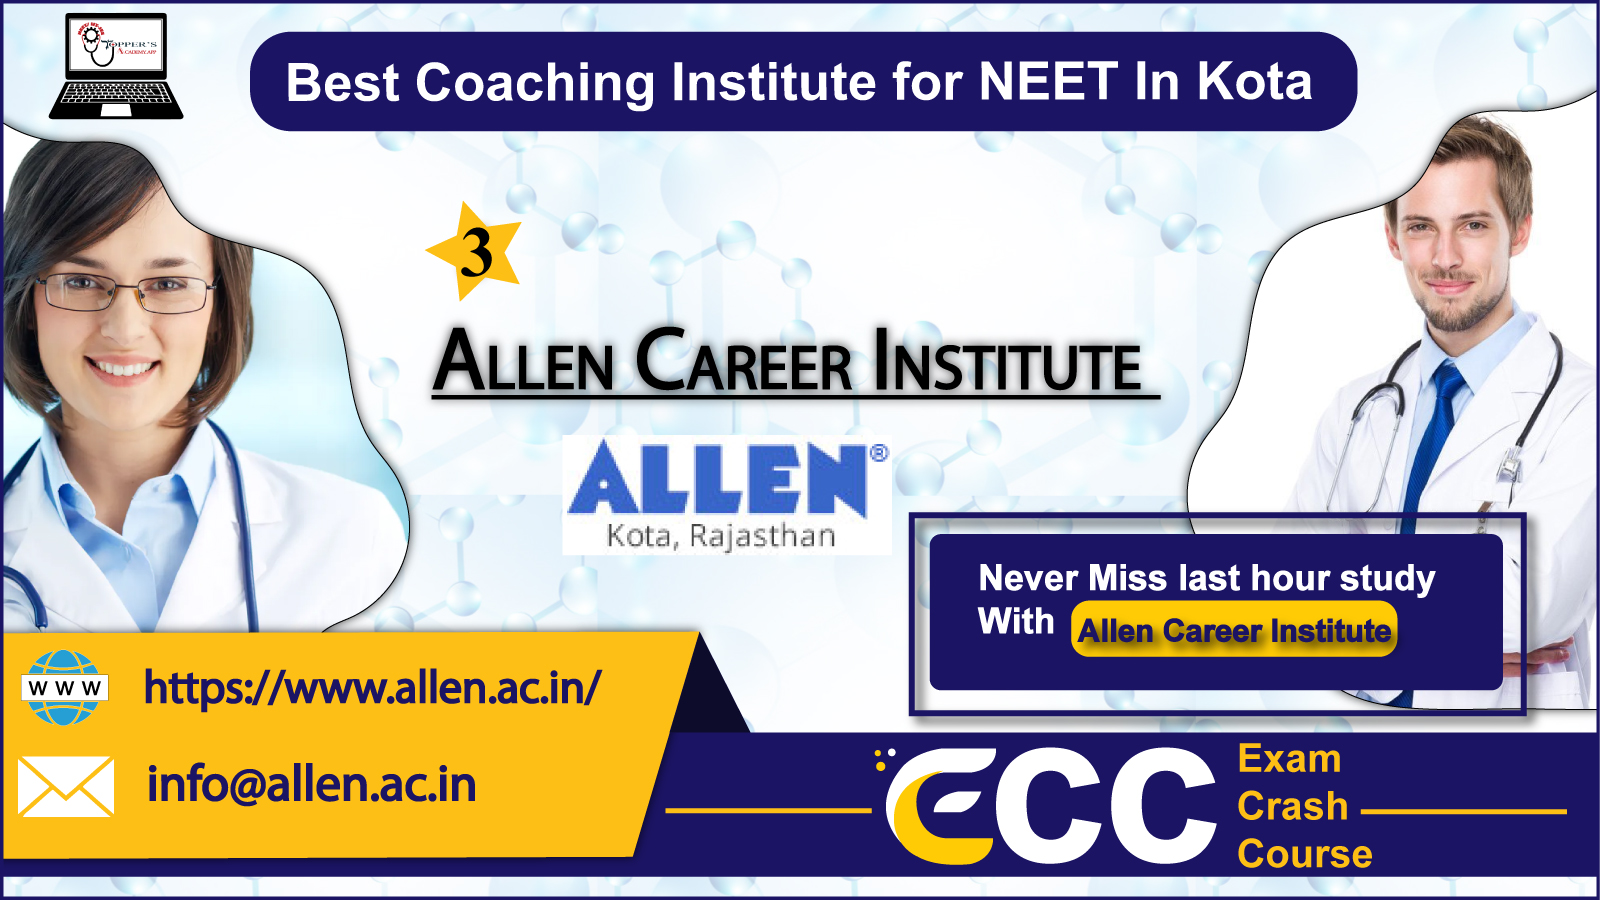 Neet coaching in kota